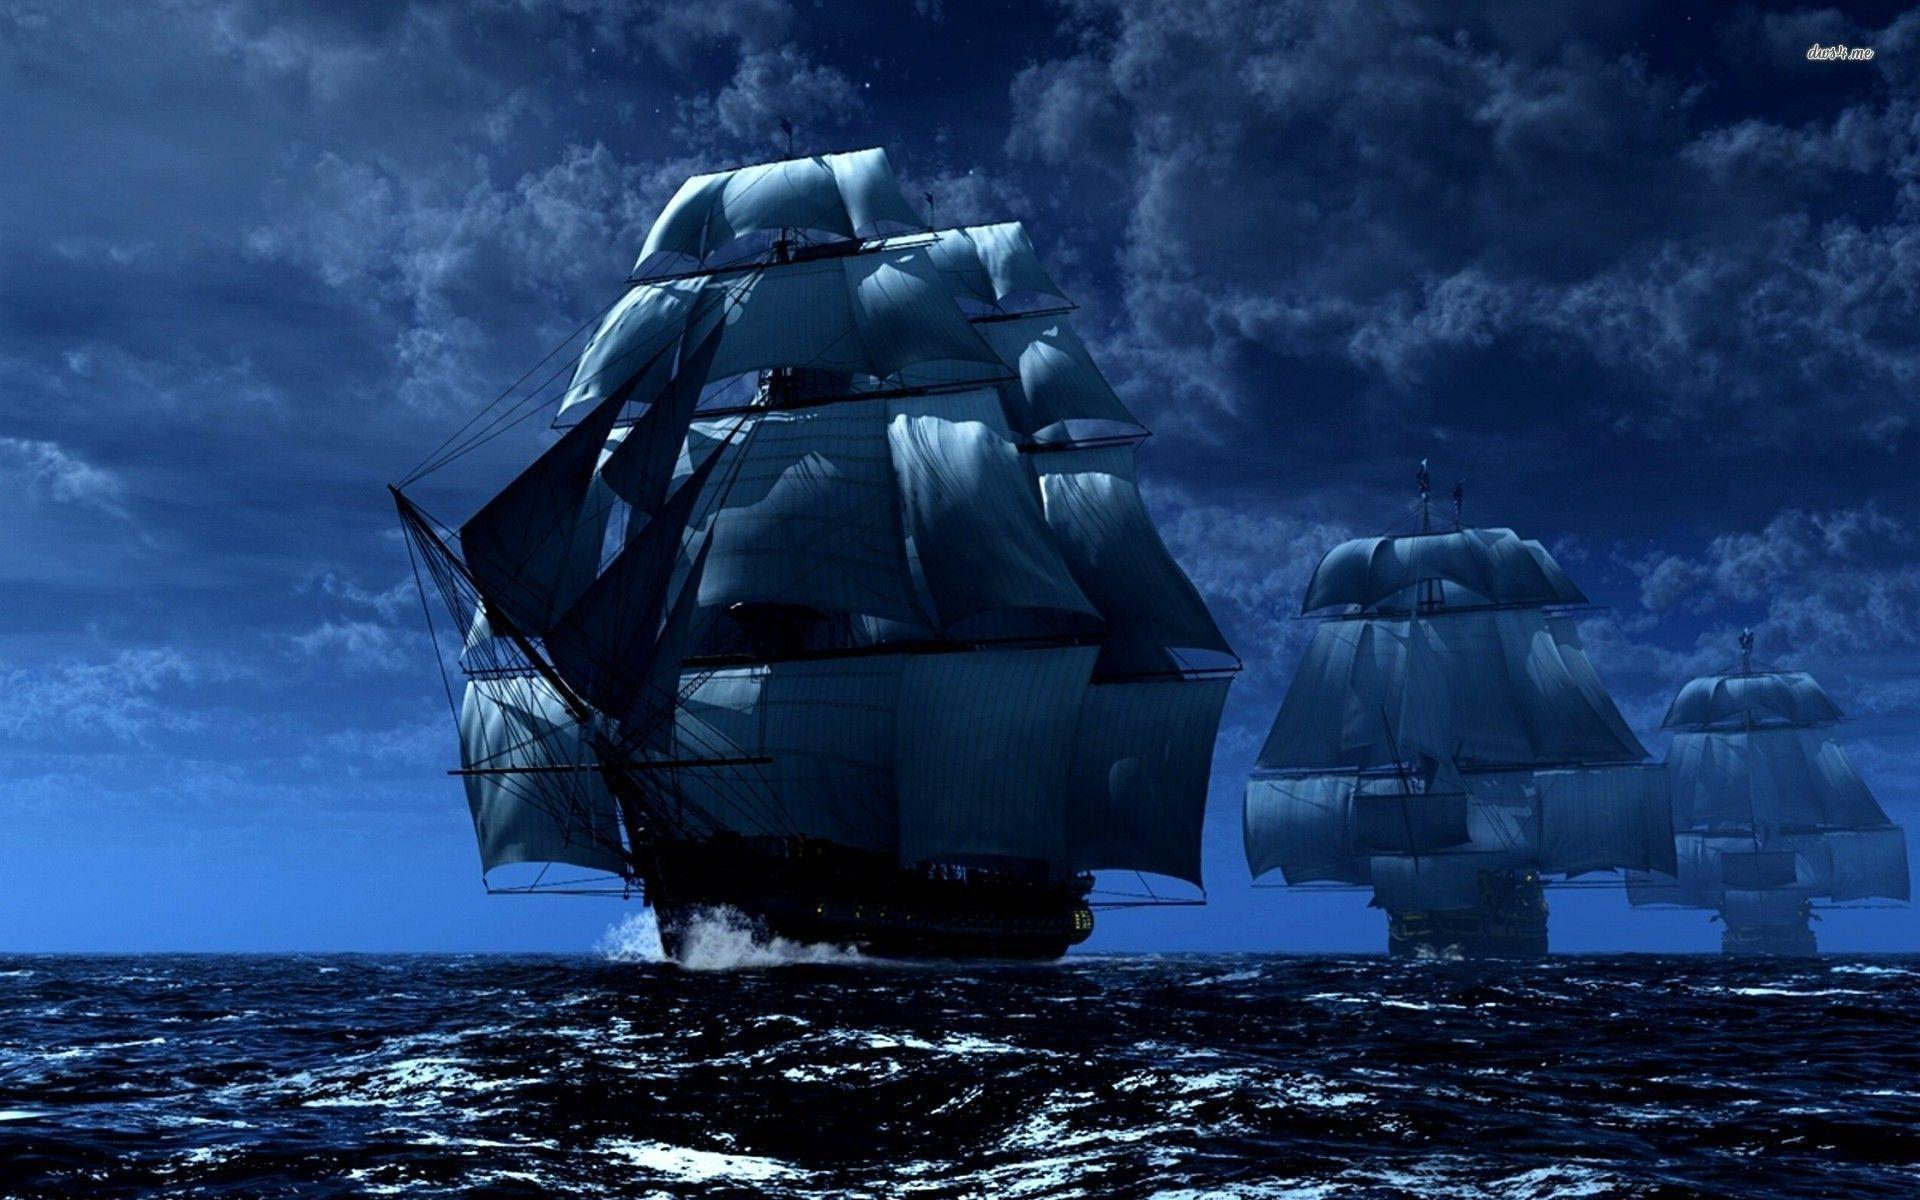 Download Pirate Ship Live Wallpaper Hd Backgrounds Download